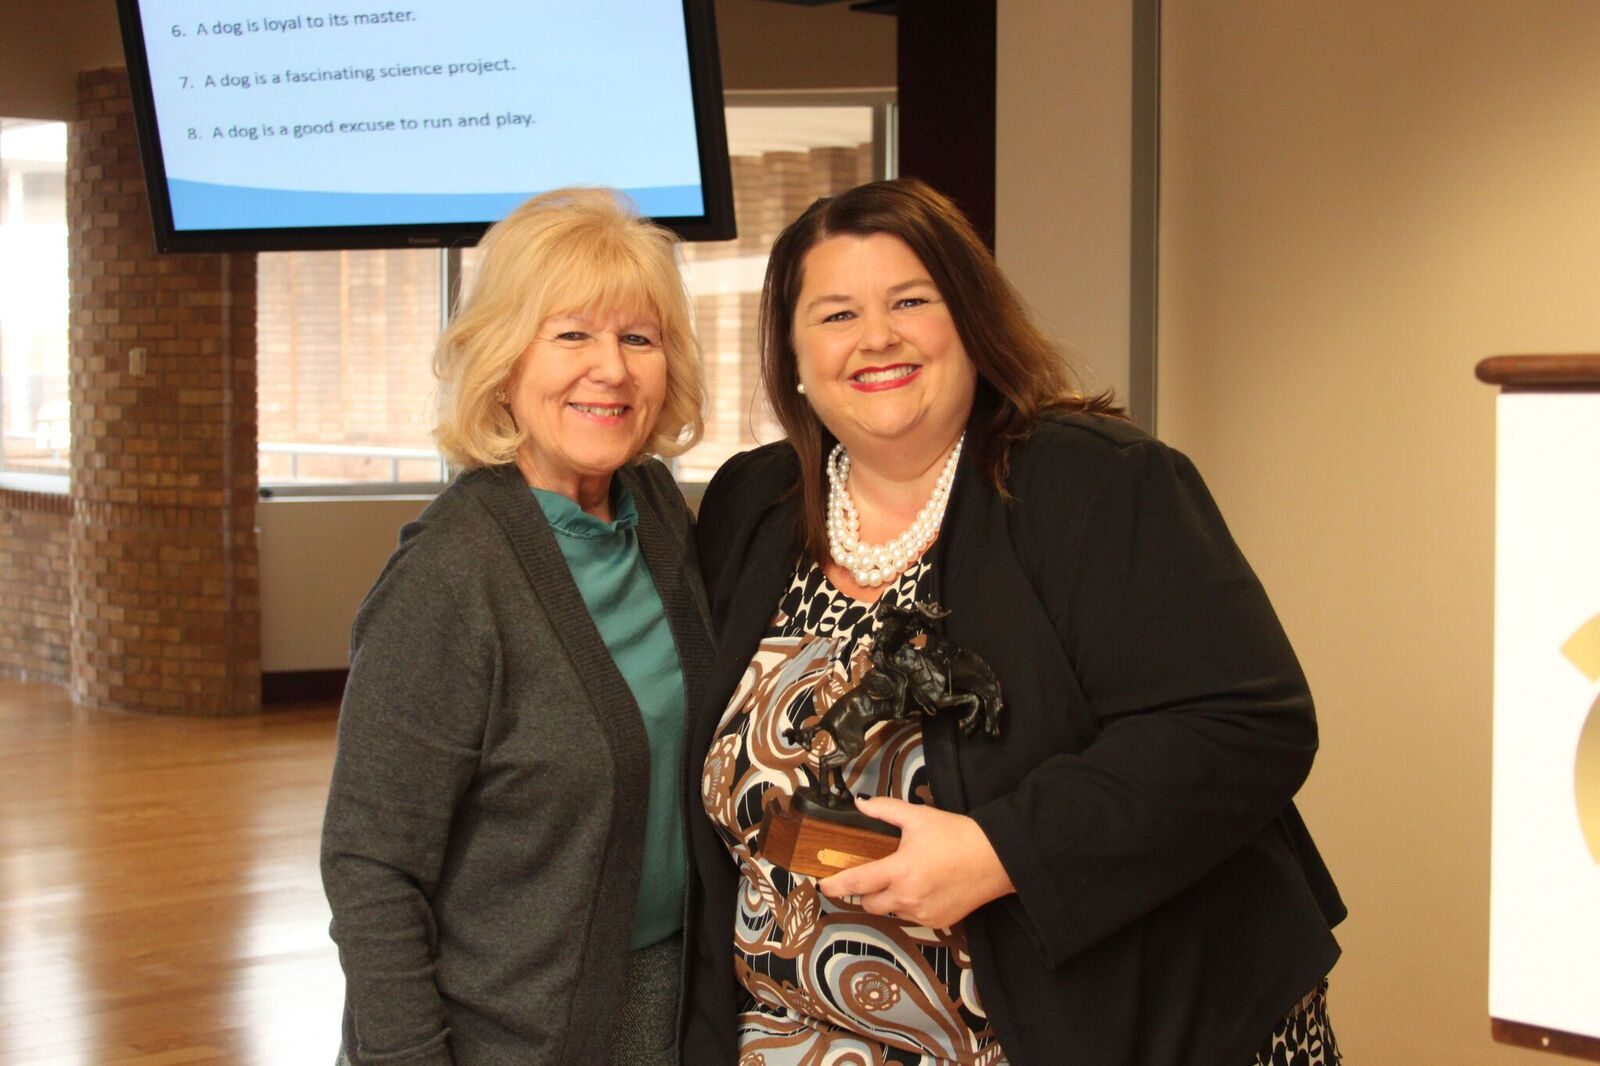 2017 - Angela Caddell   Associate Vice Chancellor for Communications  Oklahoma State Regents for Higher Education